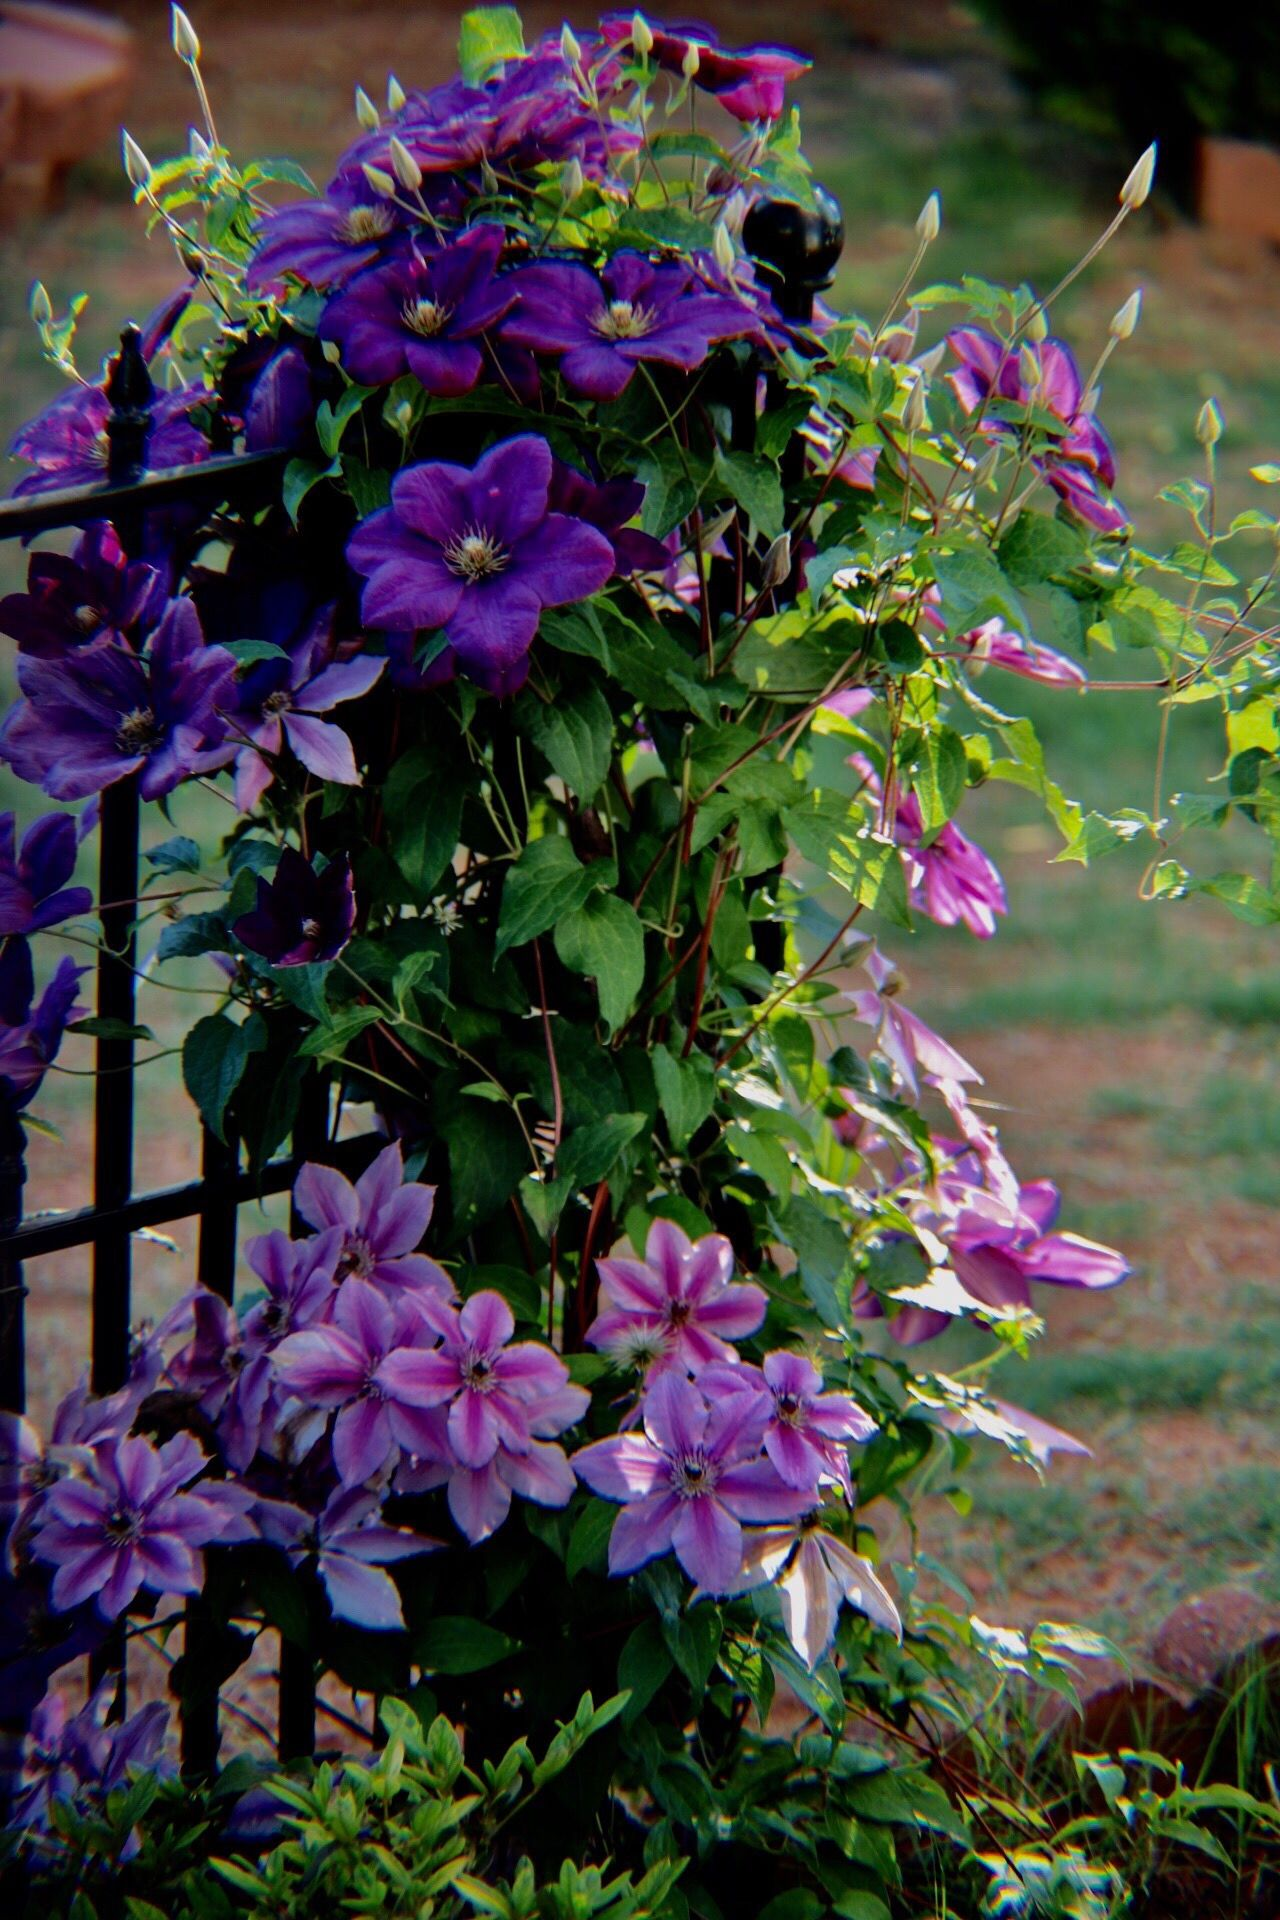 Garden Photography Garden Flowers Flower Growth Fragility Plant Petal Purple Beauty In Nature Nature Freshness Blooming Flower Head Day Outdoors Pink Color Leaf Springtime No People Close-up Clematis Clematis Flower